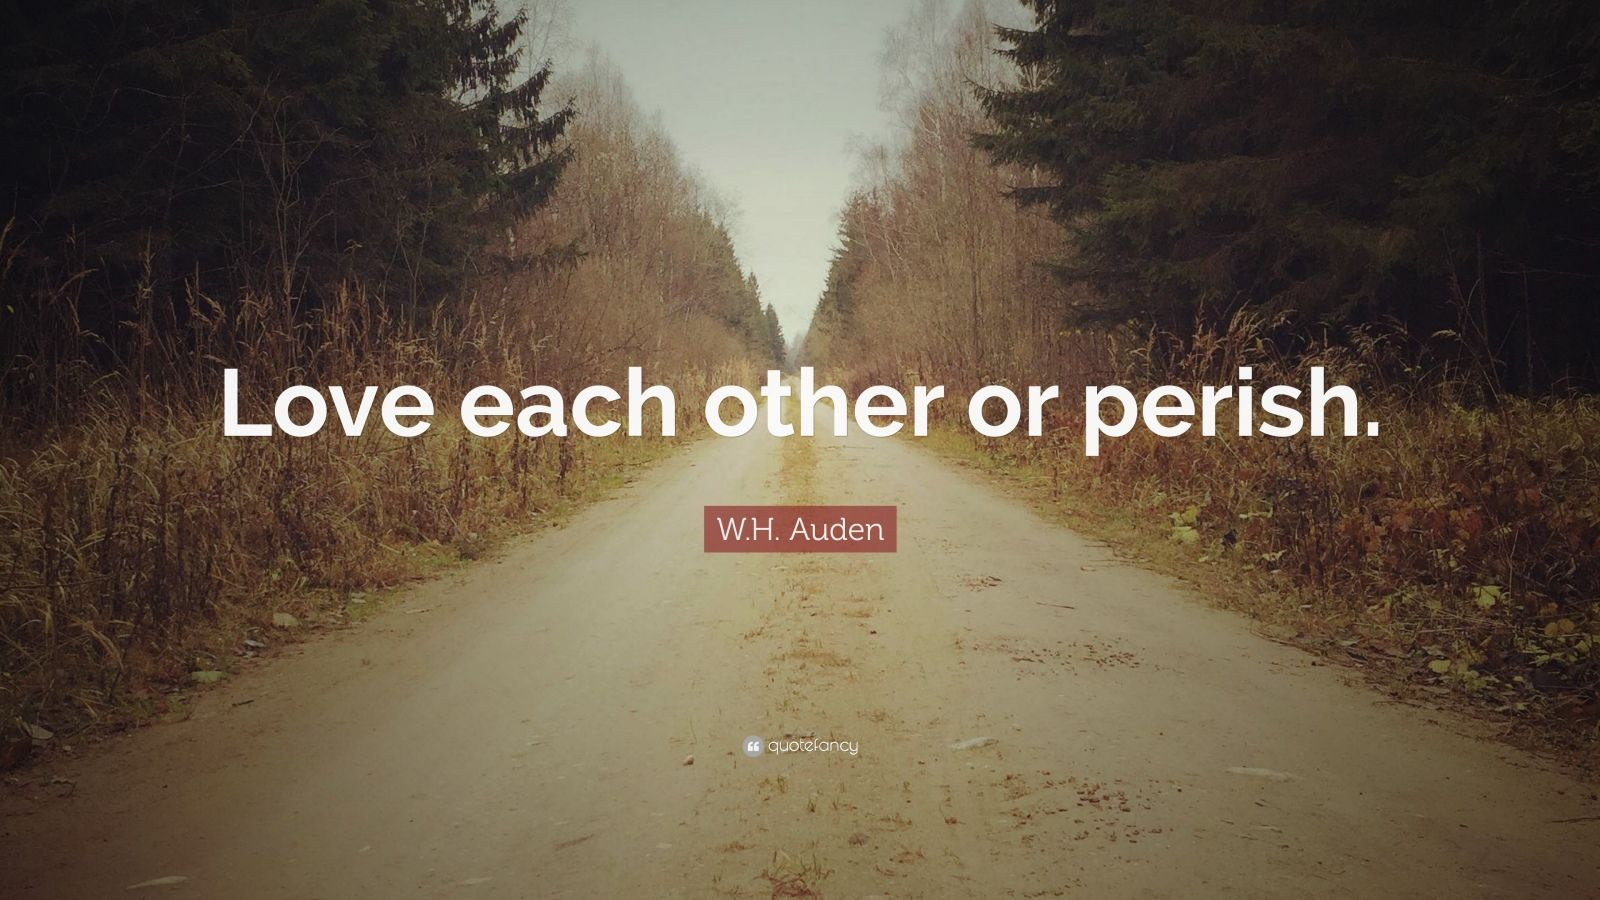 Motivational Quotes To Study Wallpaper W H Auden Quote Love Each Other Or Perish 12